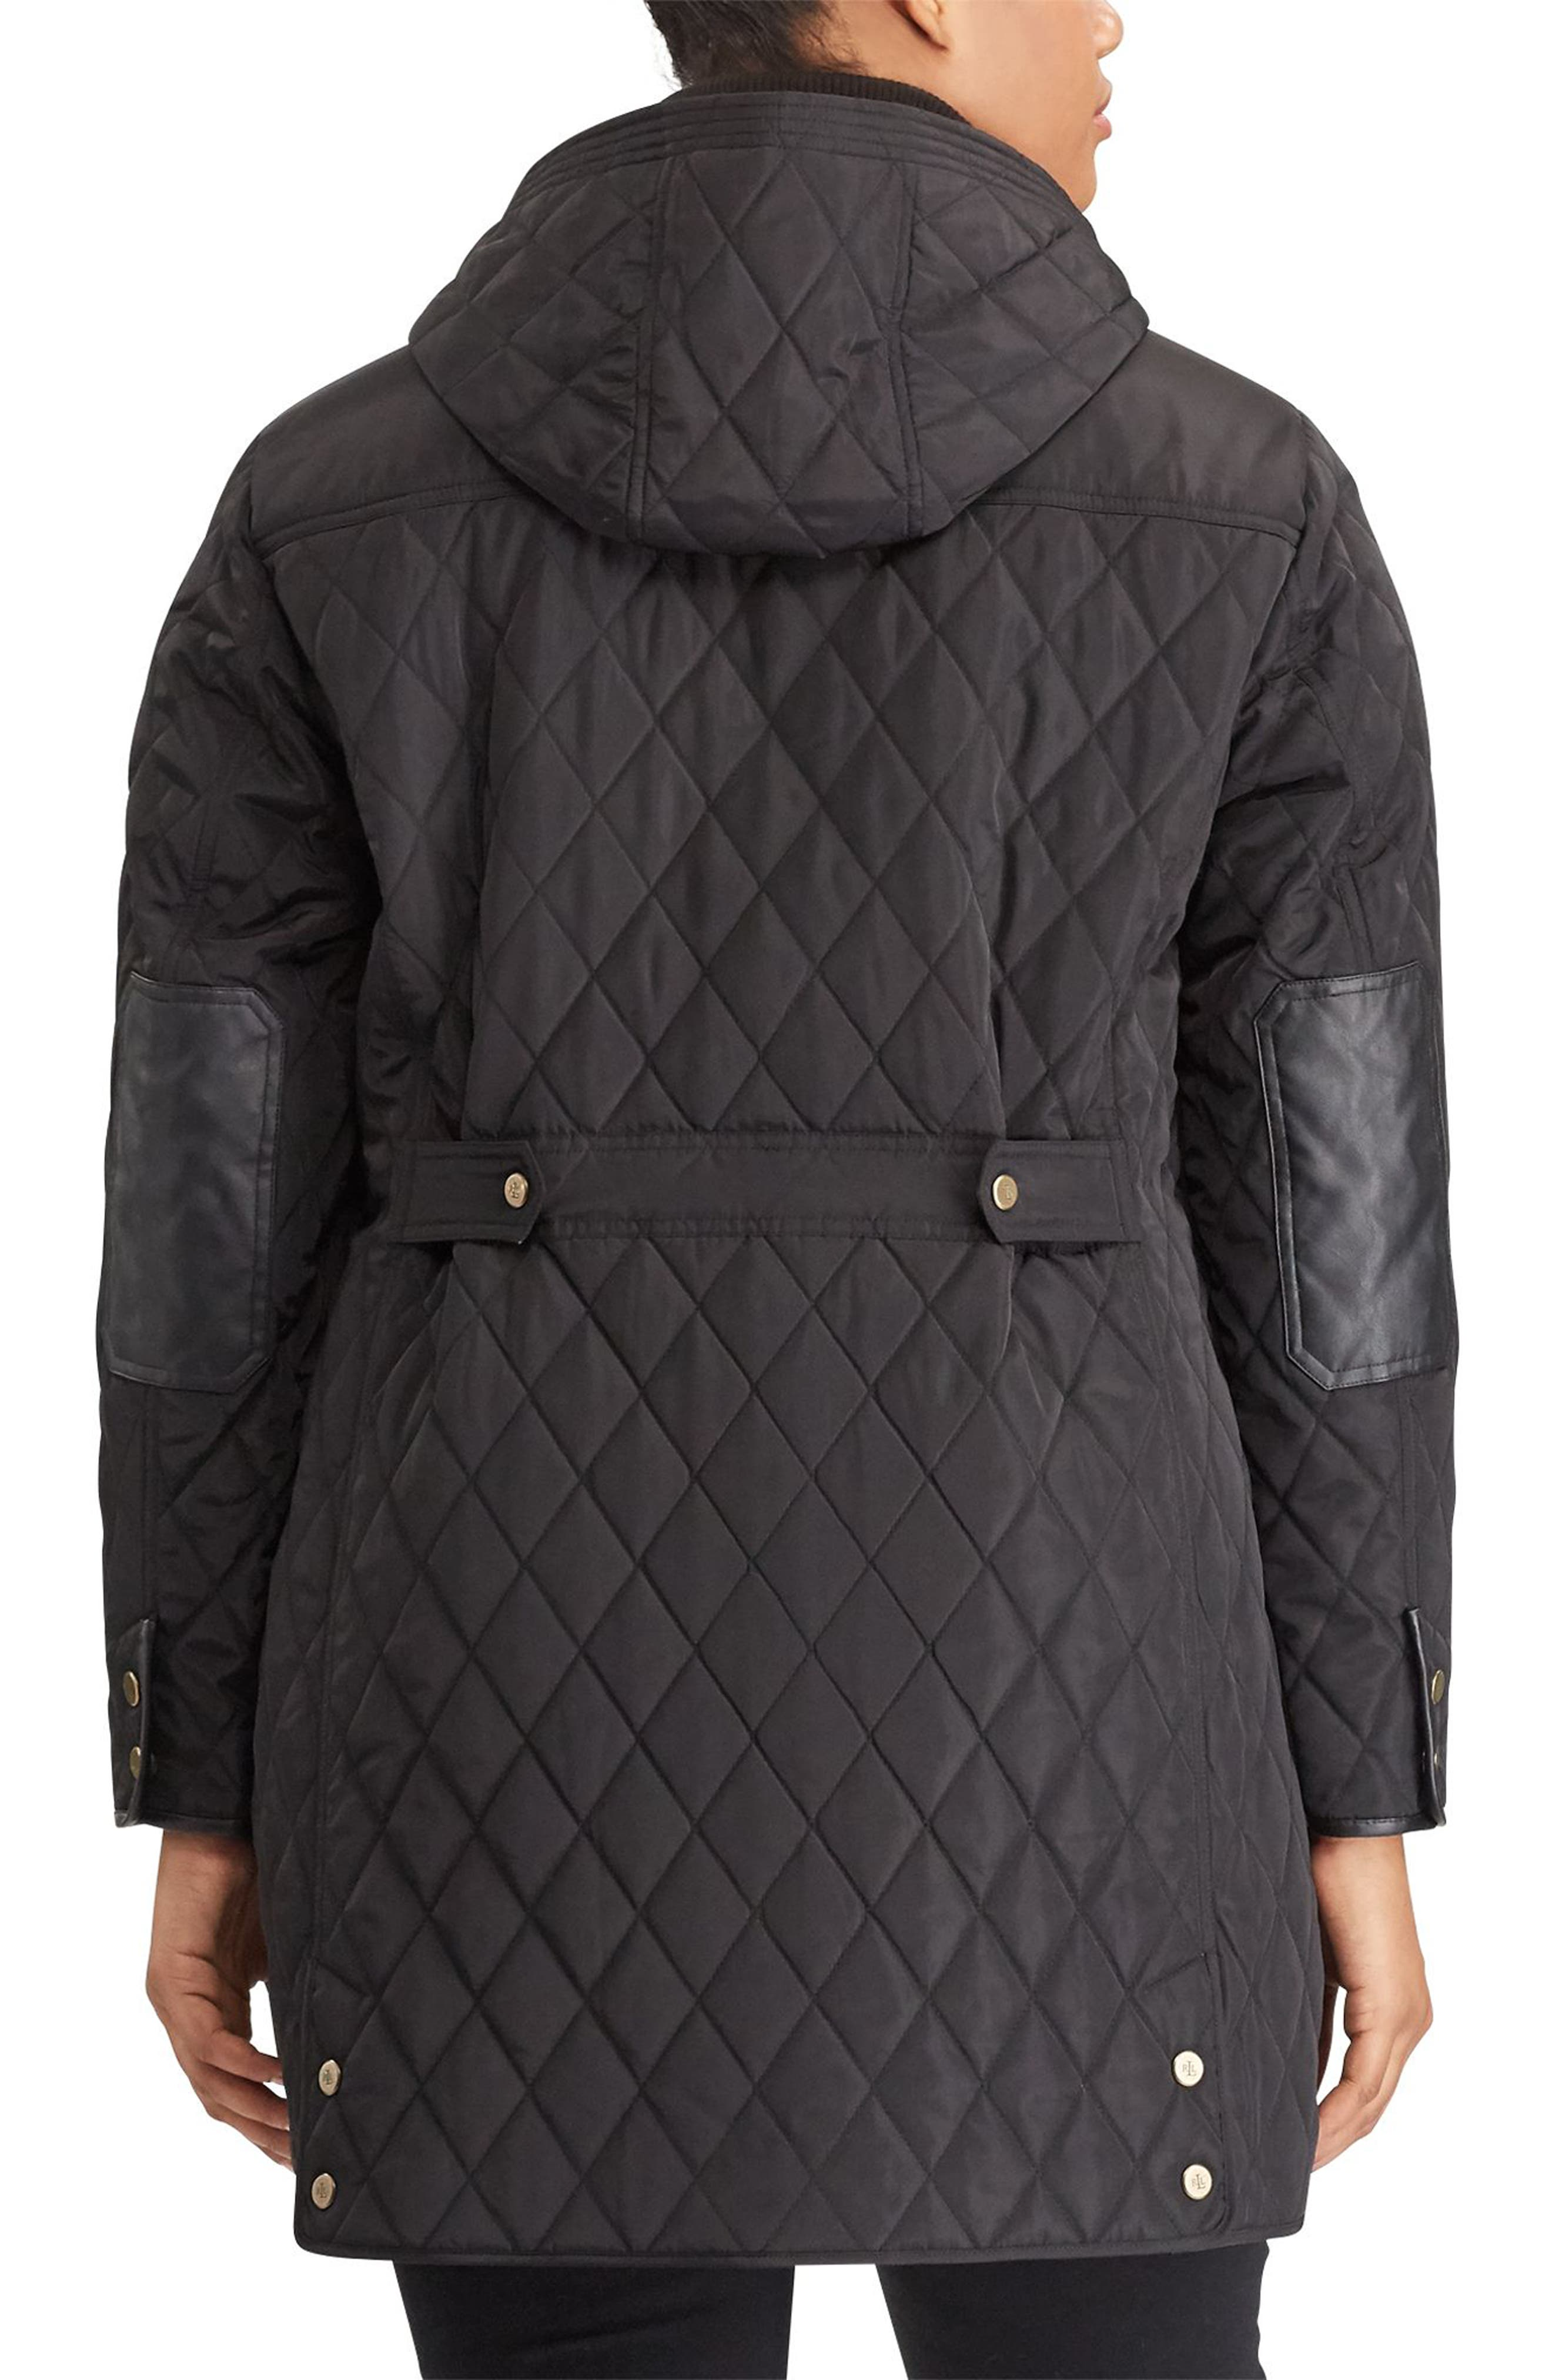 Alternate Image 2  - Lauren Ralph Lauren Diamond Quilted Jacket with Faux Leather Trim